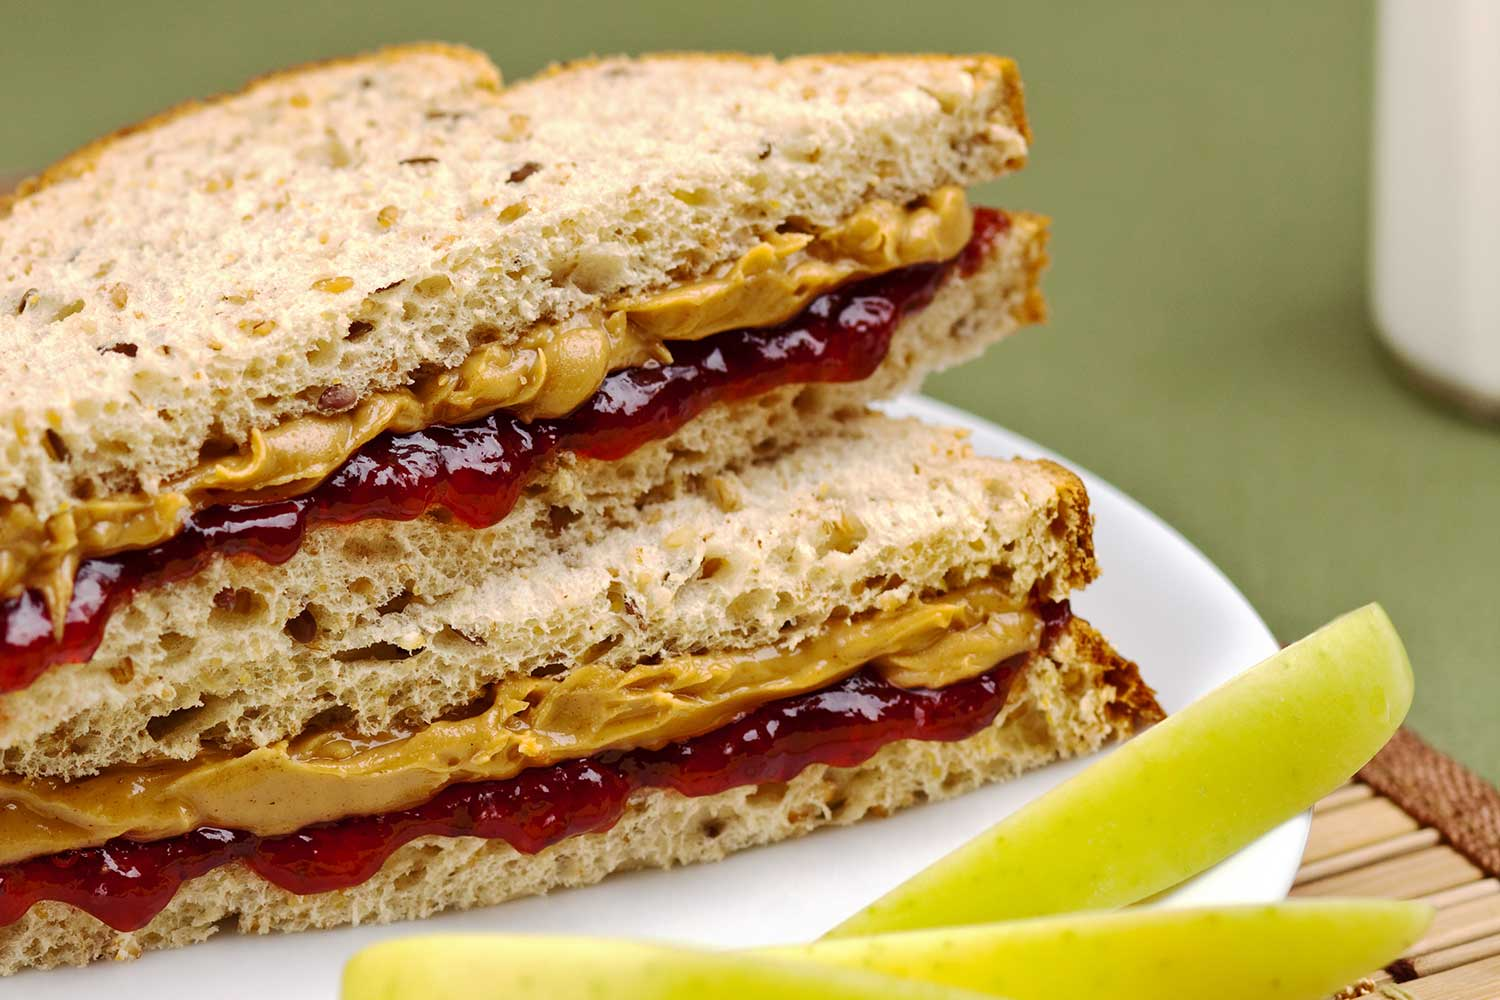 Peanut butter and jelly sandwich.